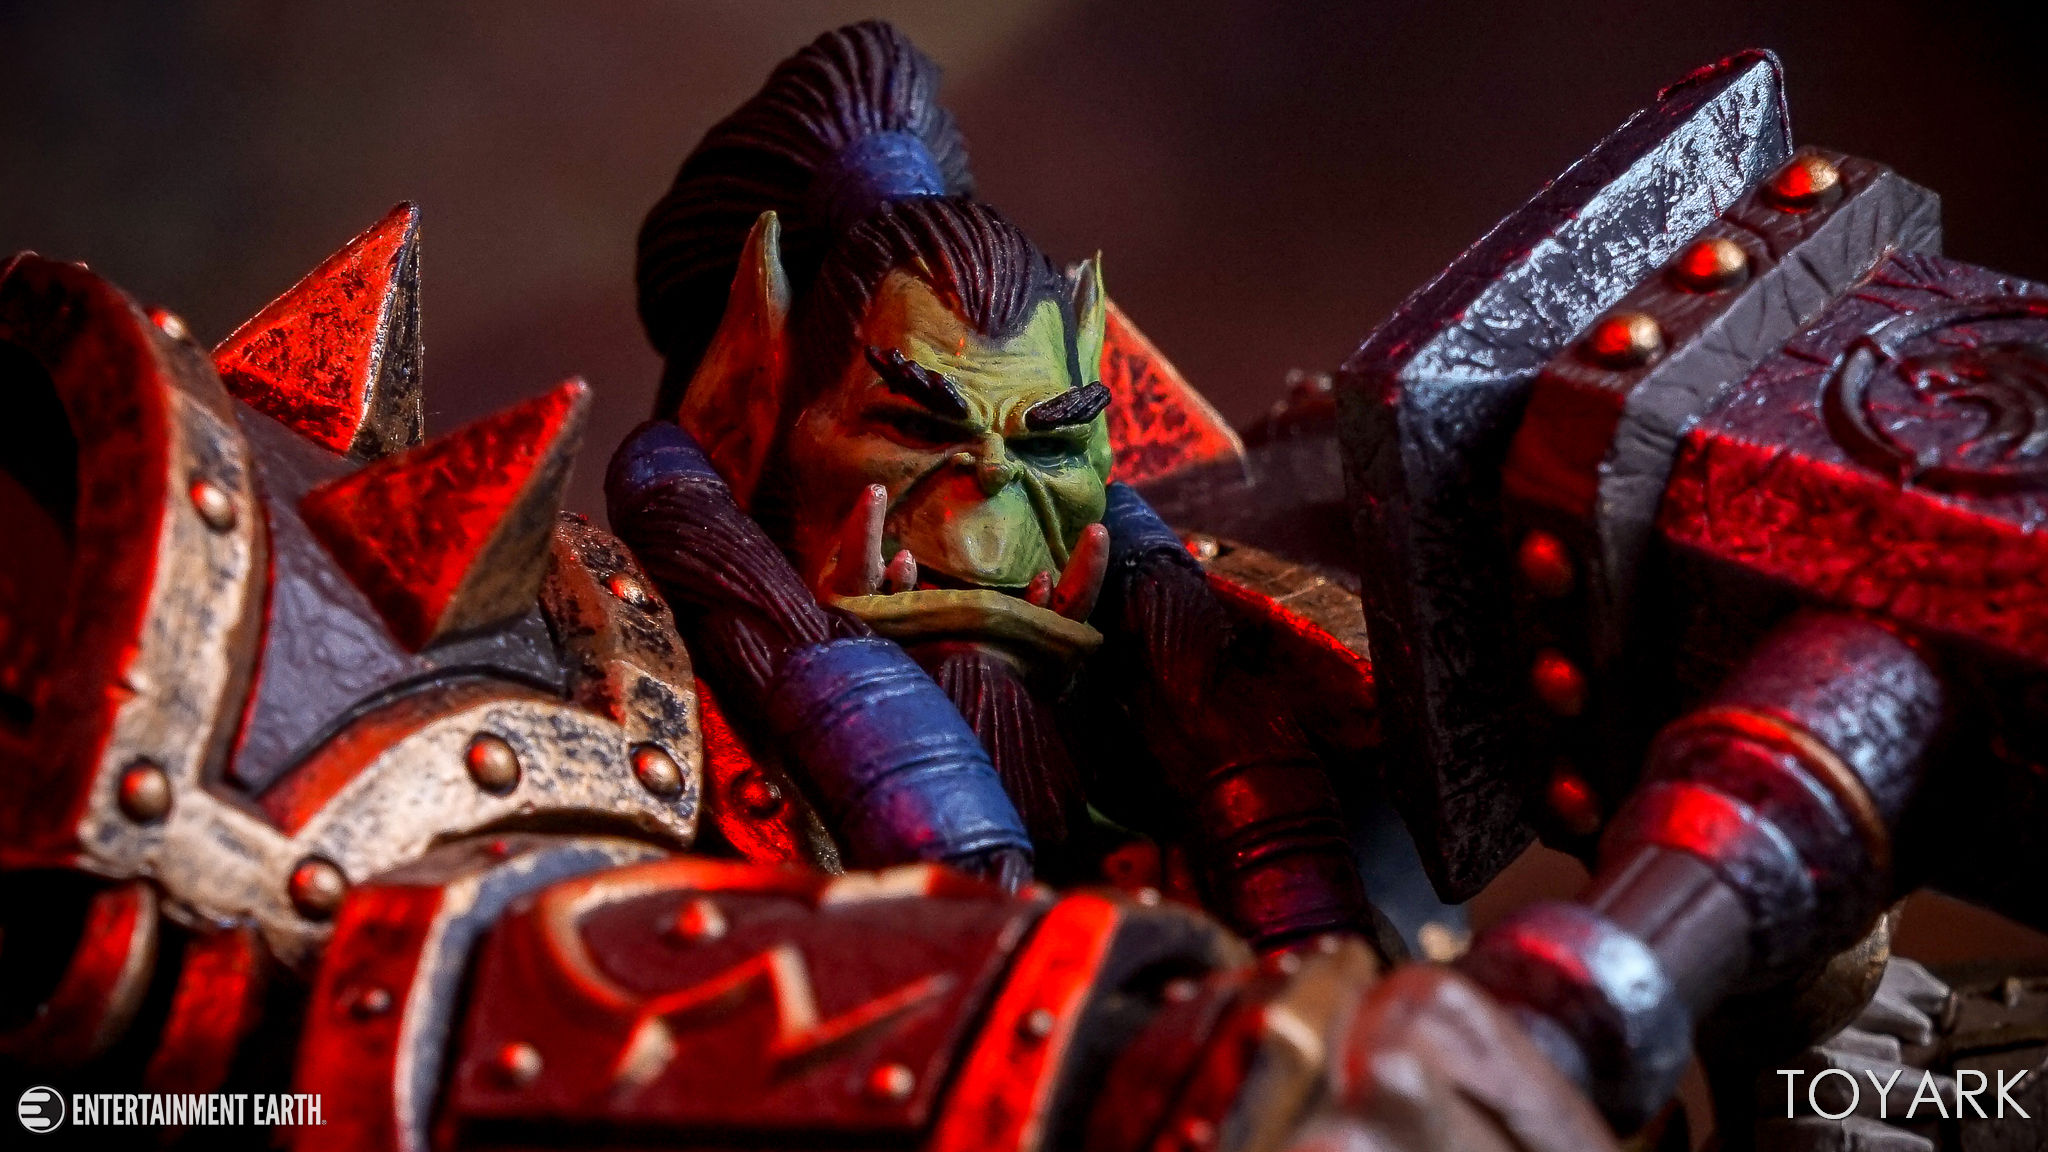 http://news.toyark.com/wp-content/uploads/sites/4/2017/08/NECA-Heroes-of-the-Storm-Thrall-017.jpg